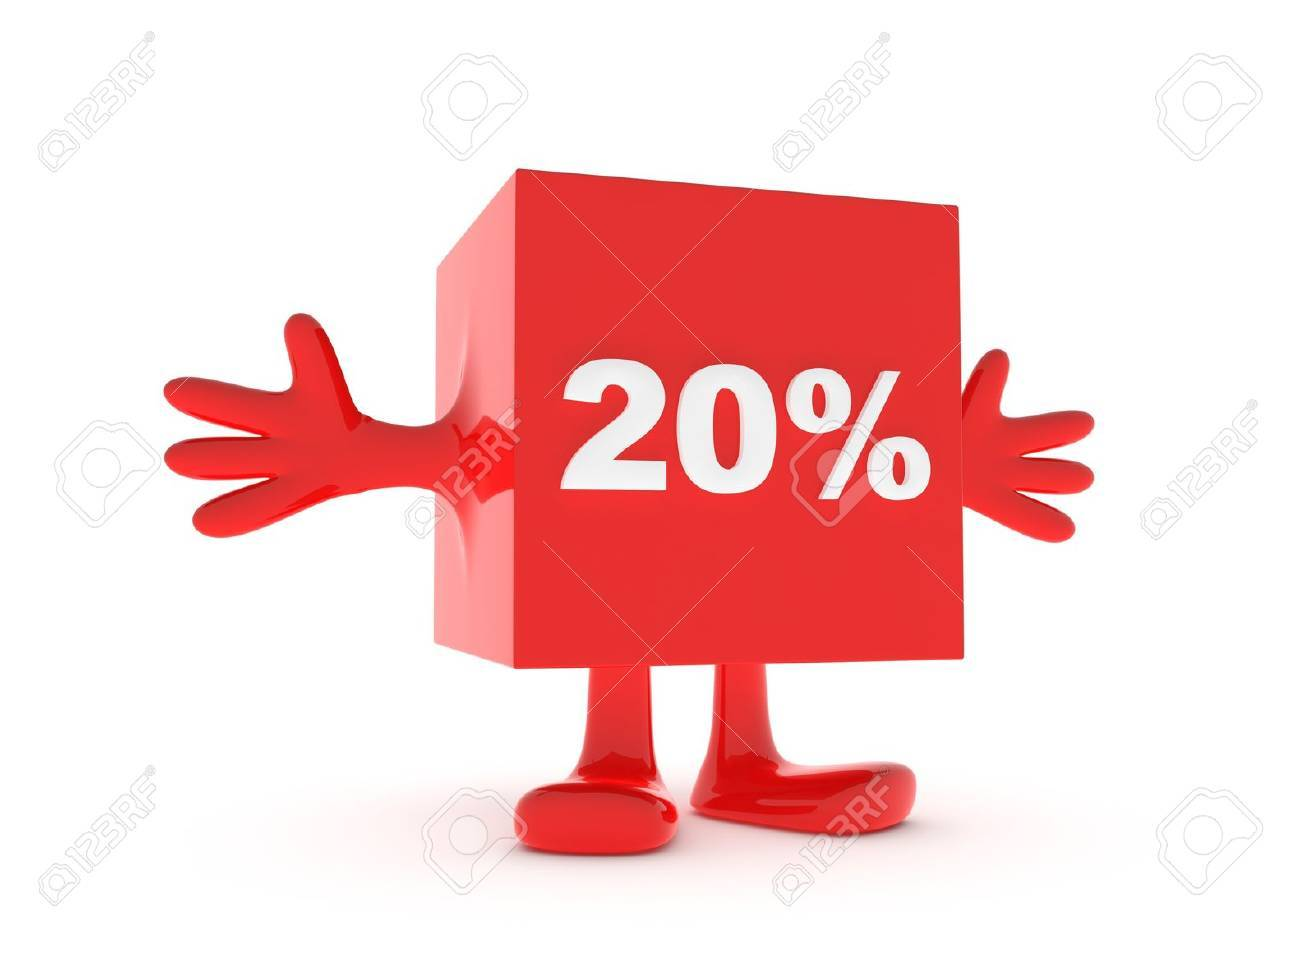 20 Percent discount happy figure Stock Photo - 11503354